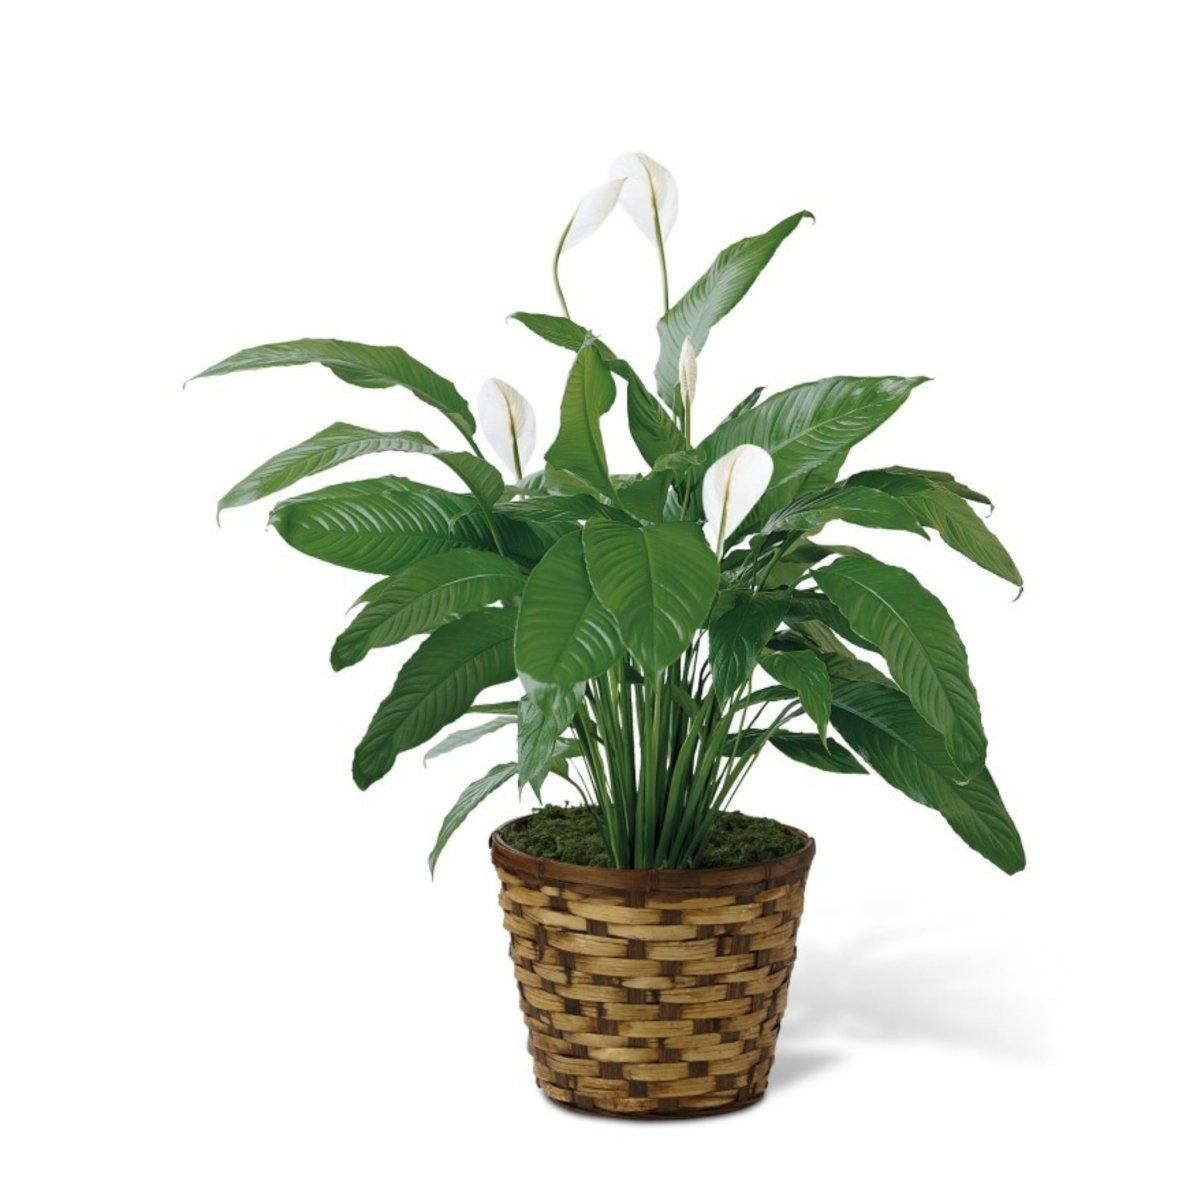 The FTD® Spathiphyllum - Shalimar Flower Shop